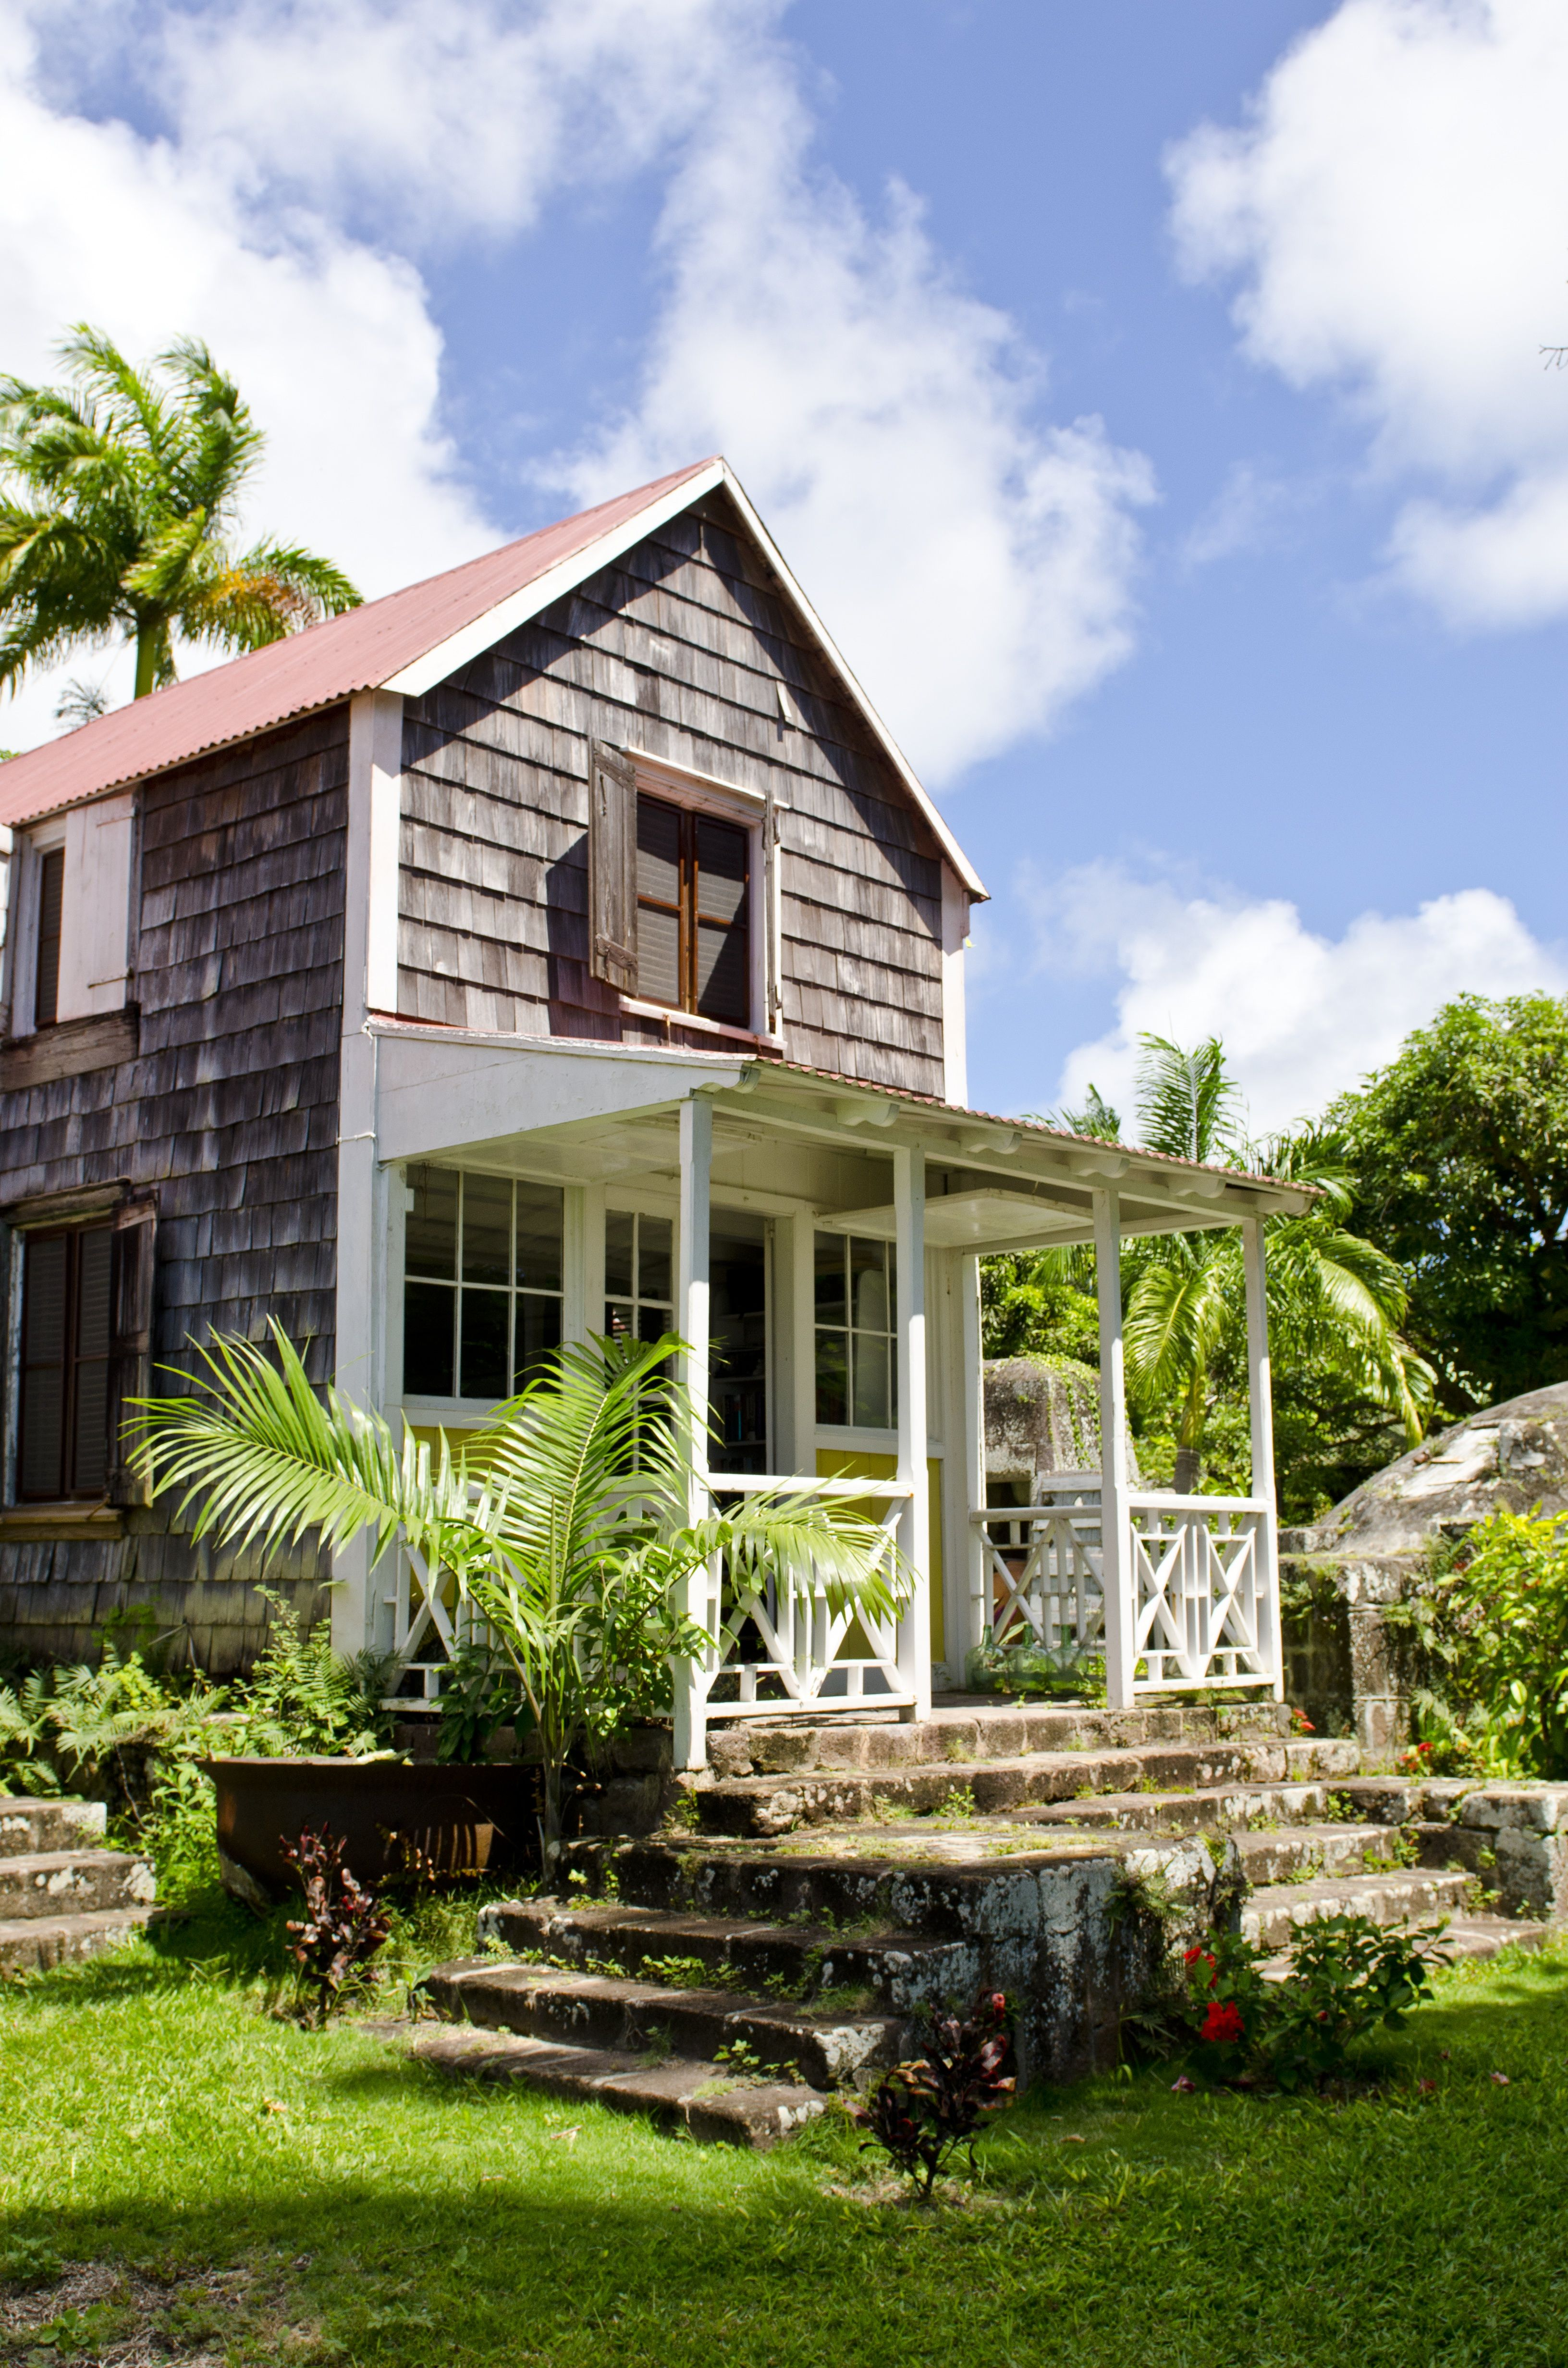 Oldest Wooden House On Nevis At The Hermitage